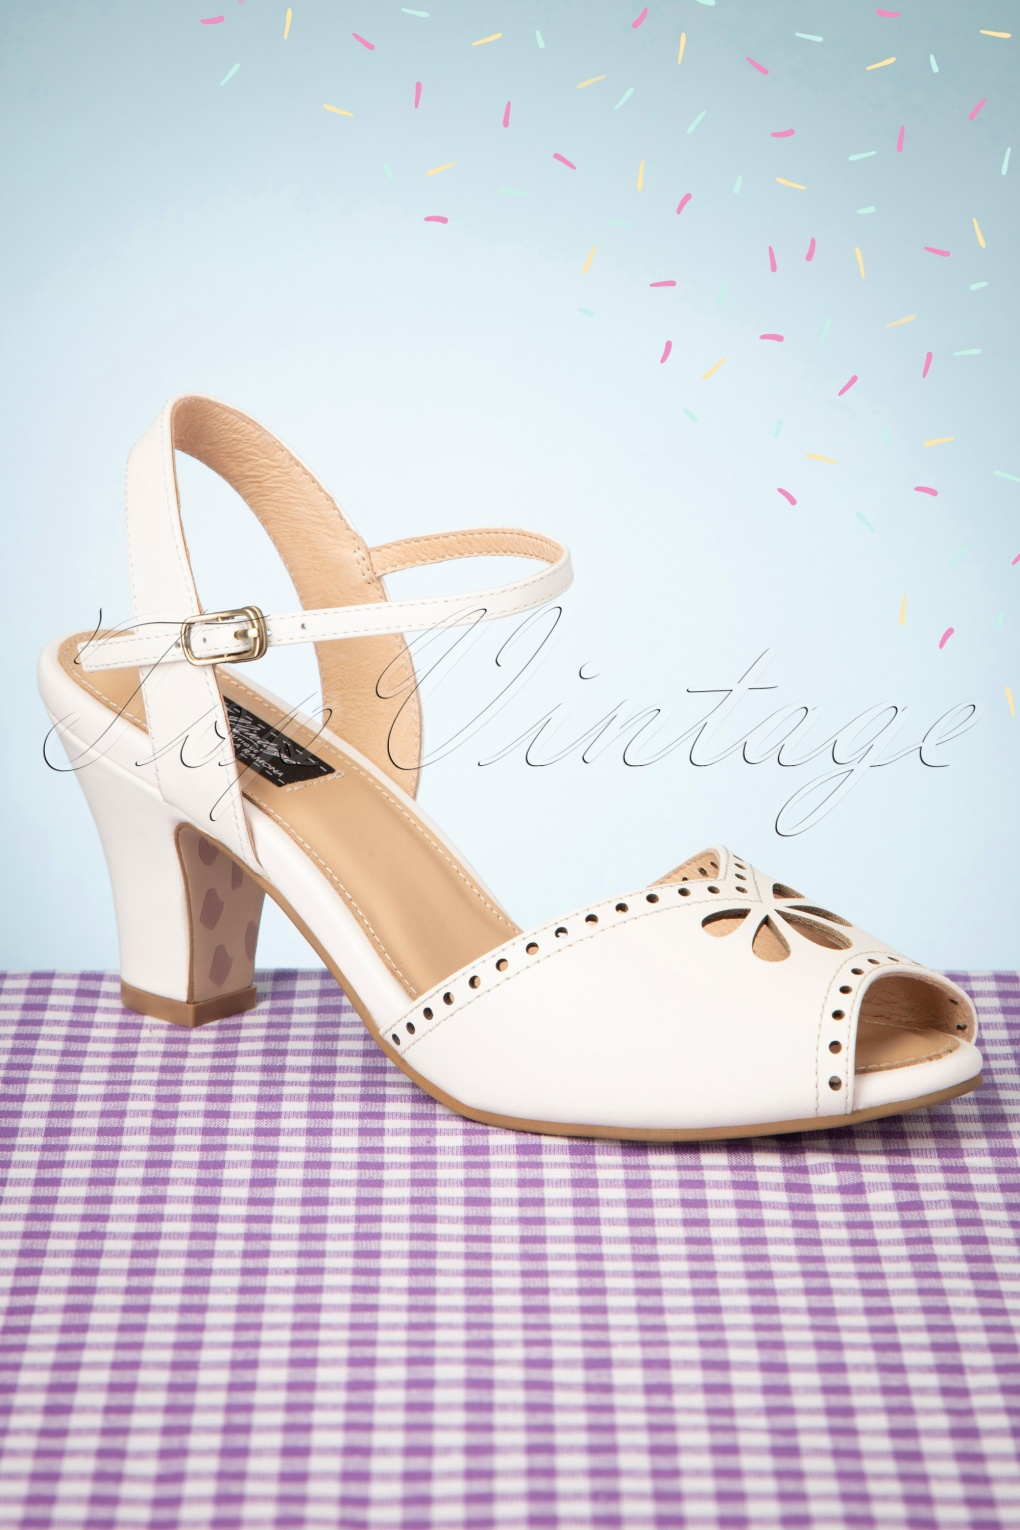 1950s Style Shoes | Heels, Flats, Saddle Shoes 50s Ava Bellezza Classica Sandalettes in Off-White £80.64 AT vintagedancer.com